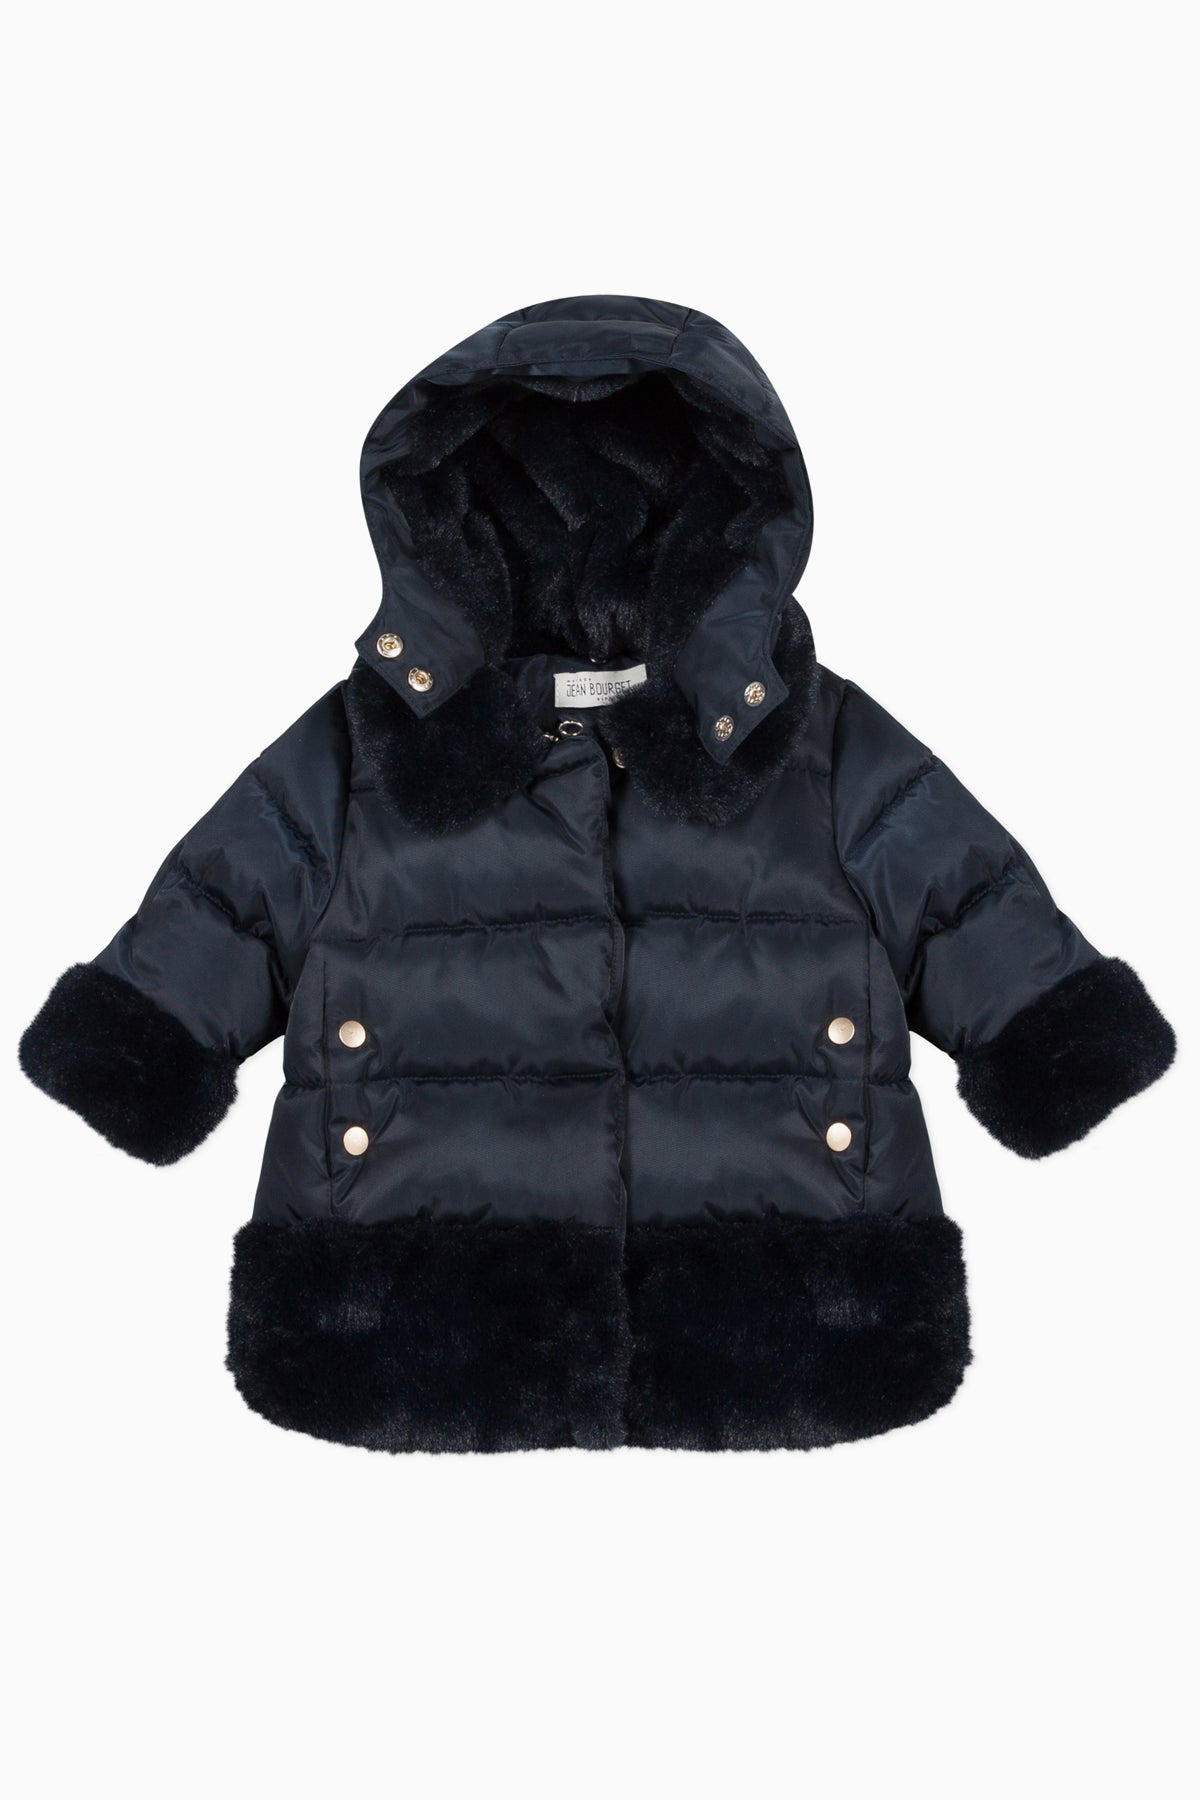 Jean Bourget Marine Blue Baby Coat